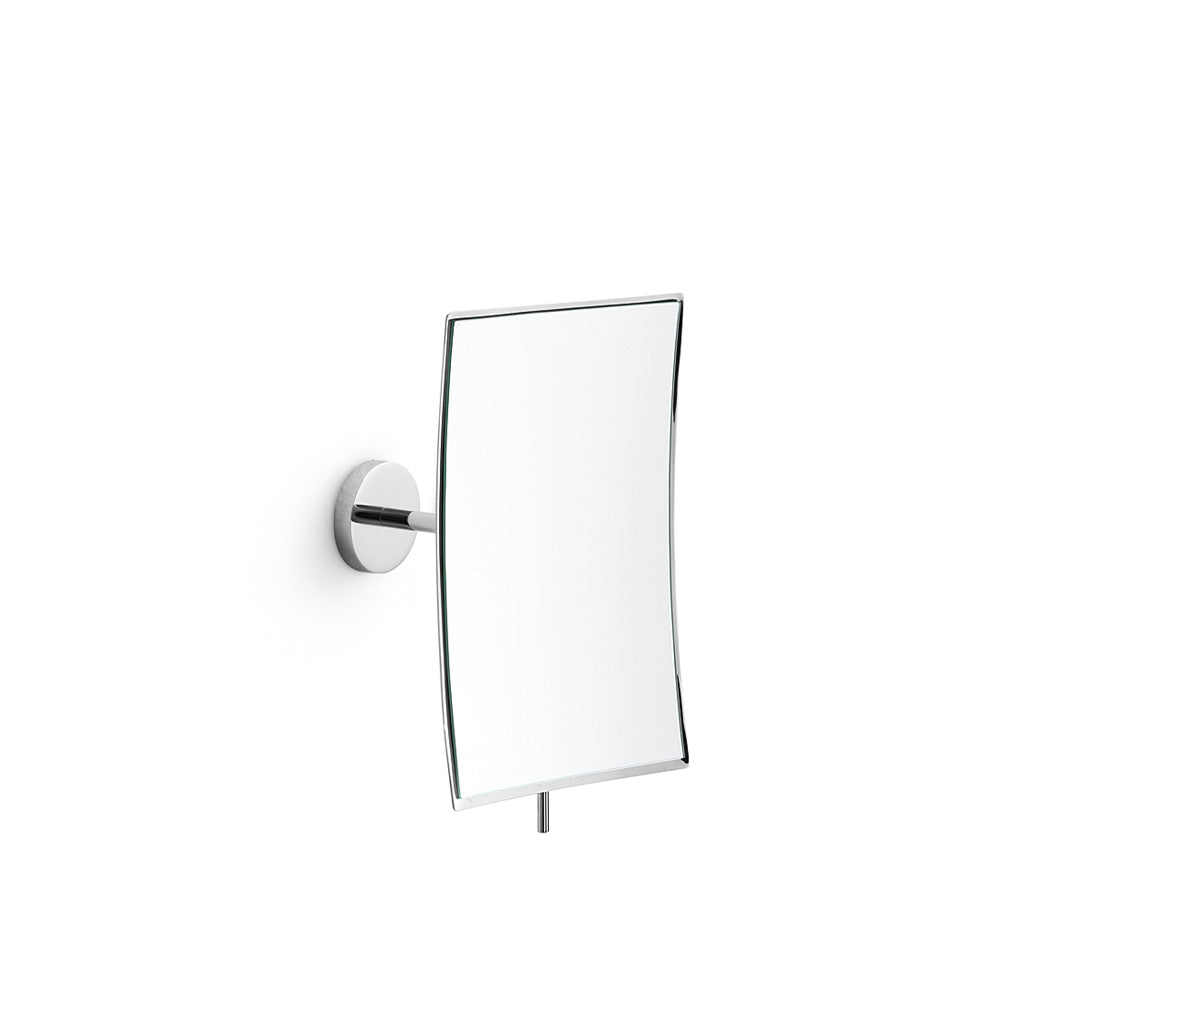 Lineabeta Wall Mirror, 3x, Rectangular